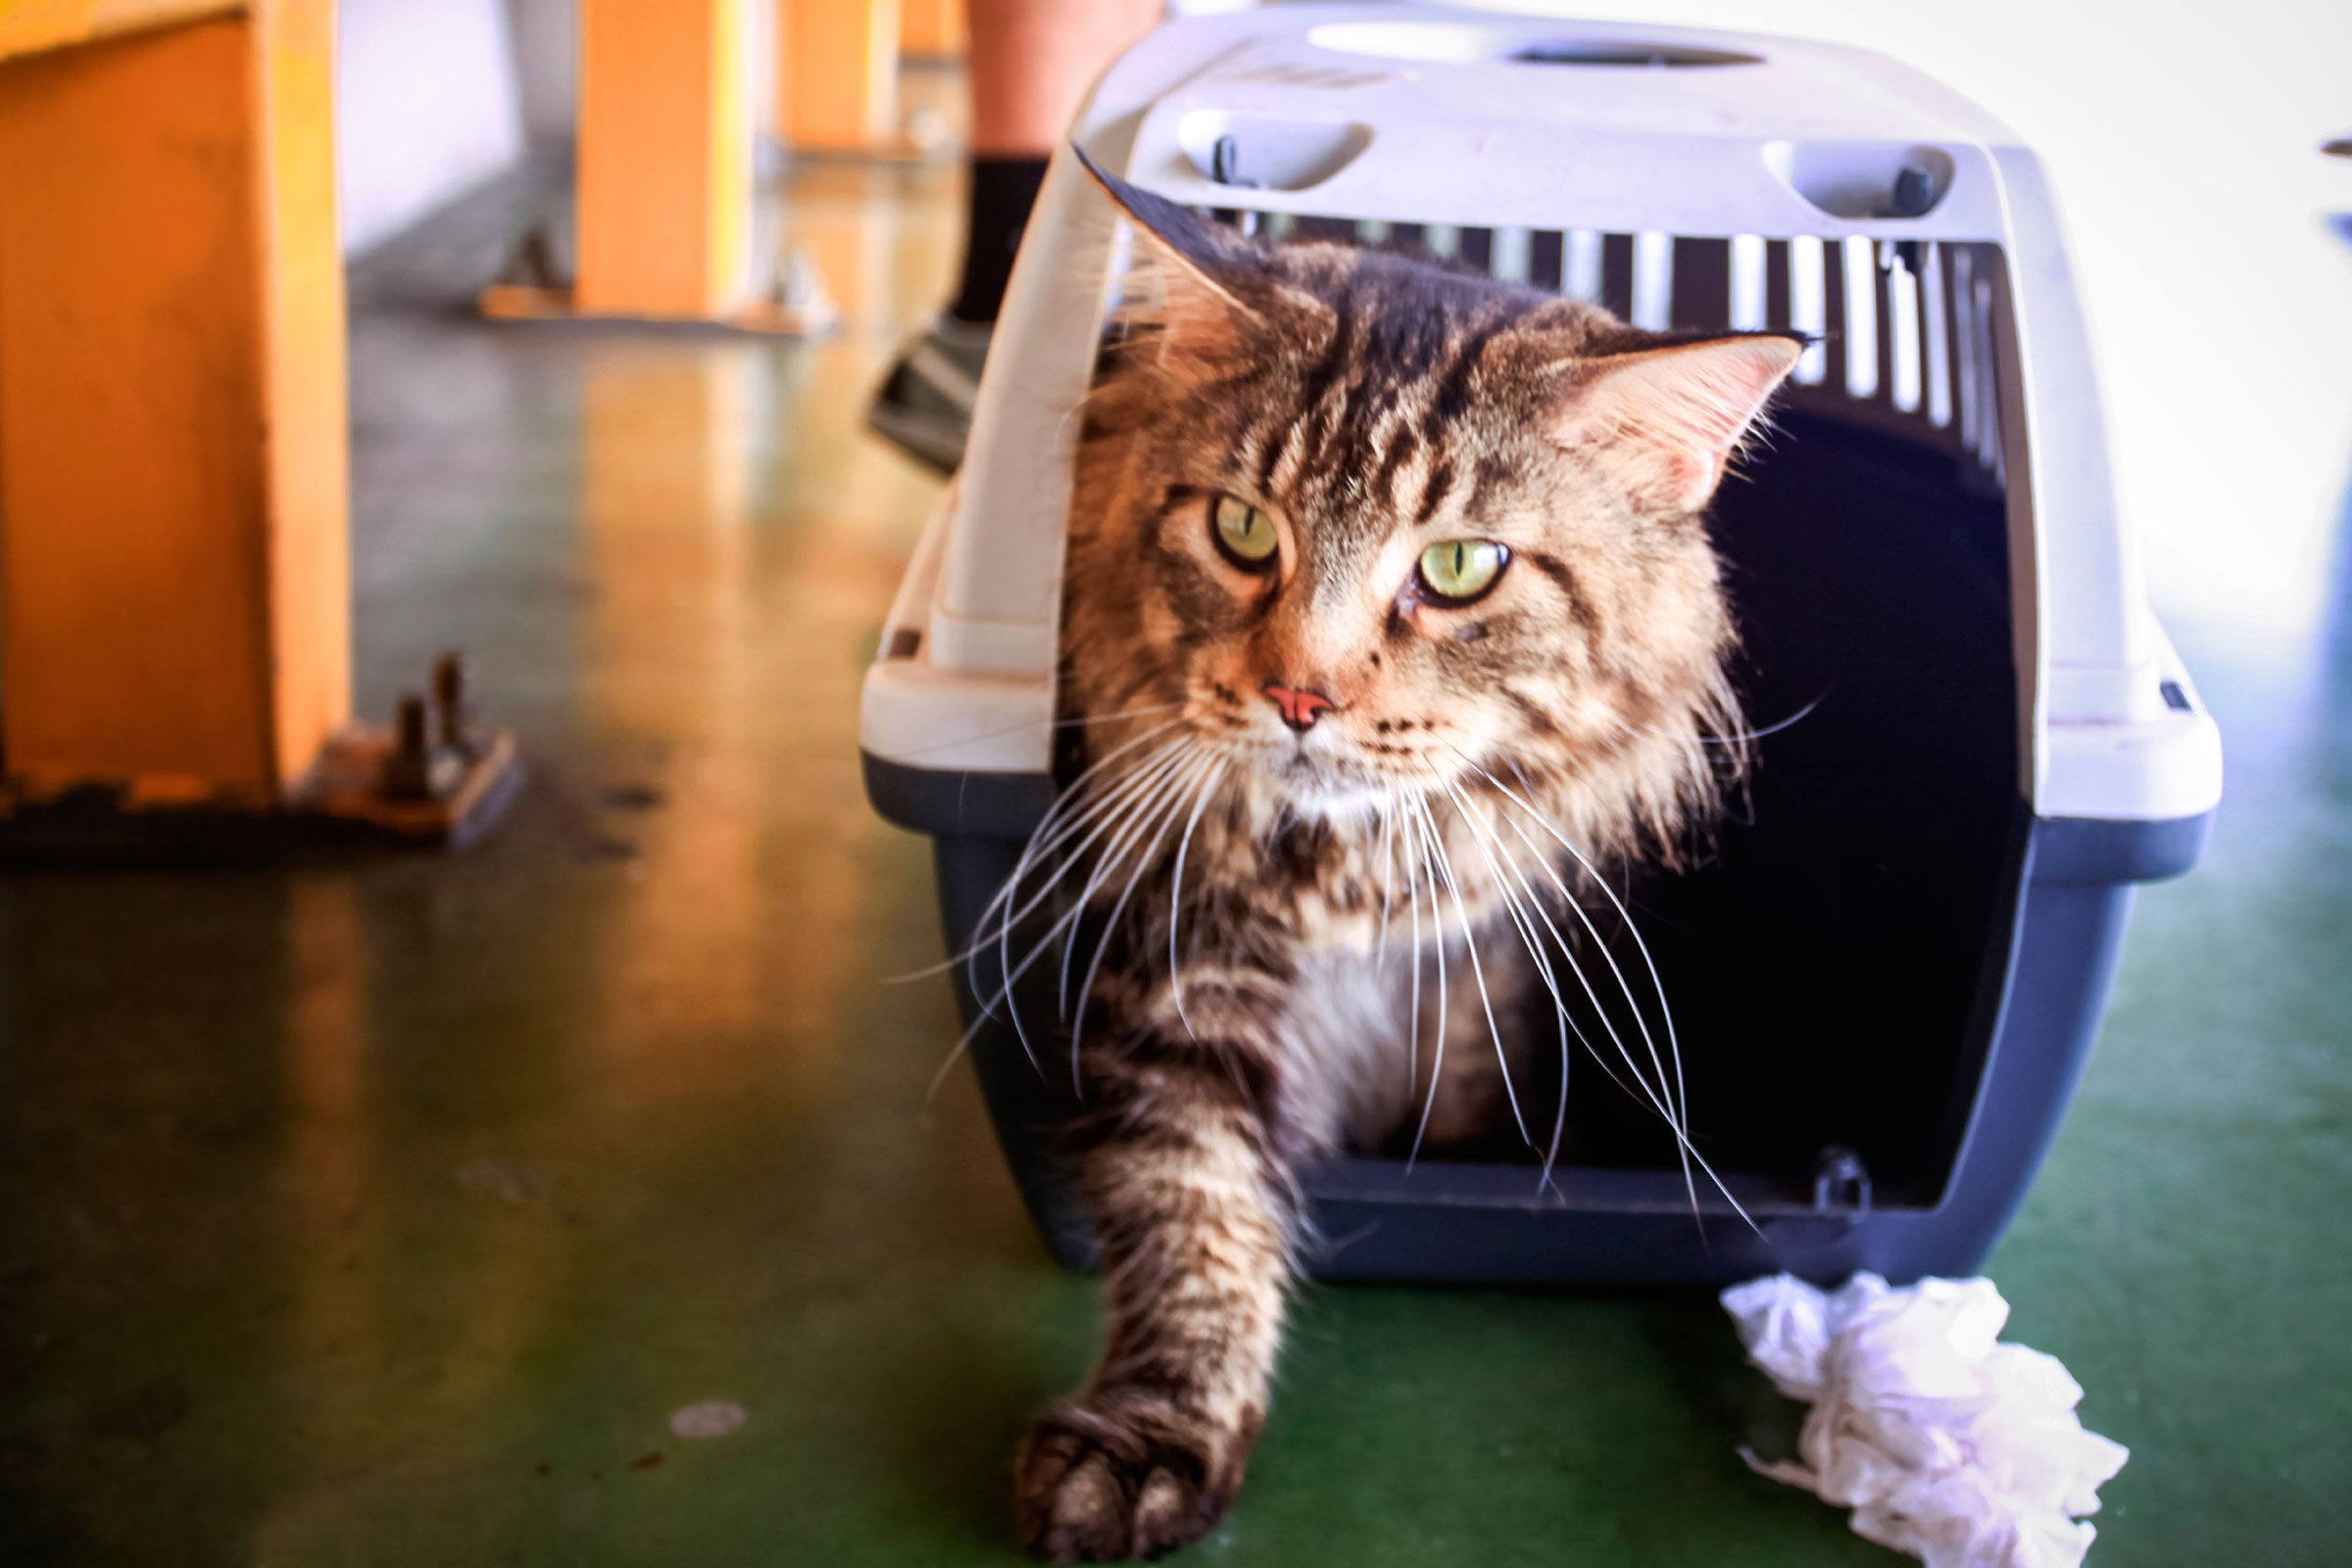 Take Your Cat To The Vet In A Plastic Carrier With Removable Top